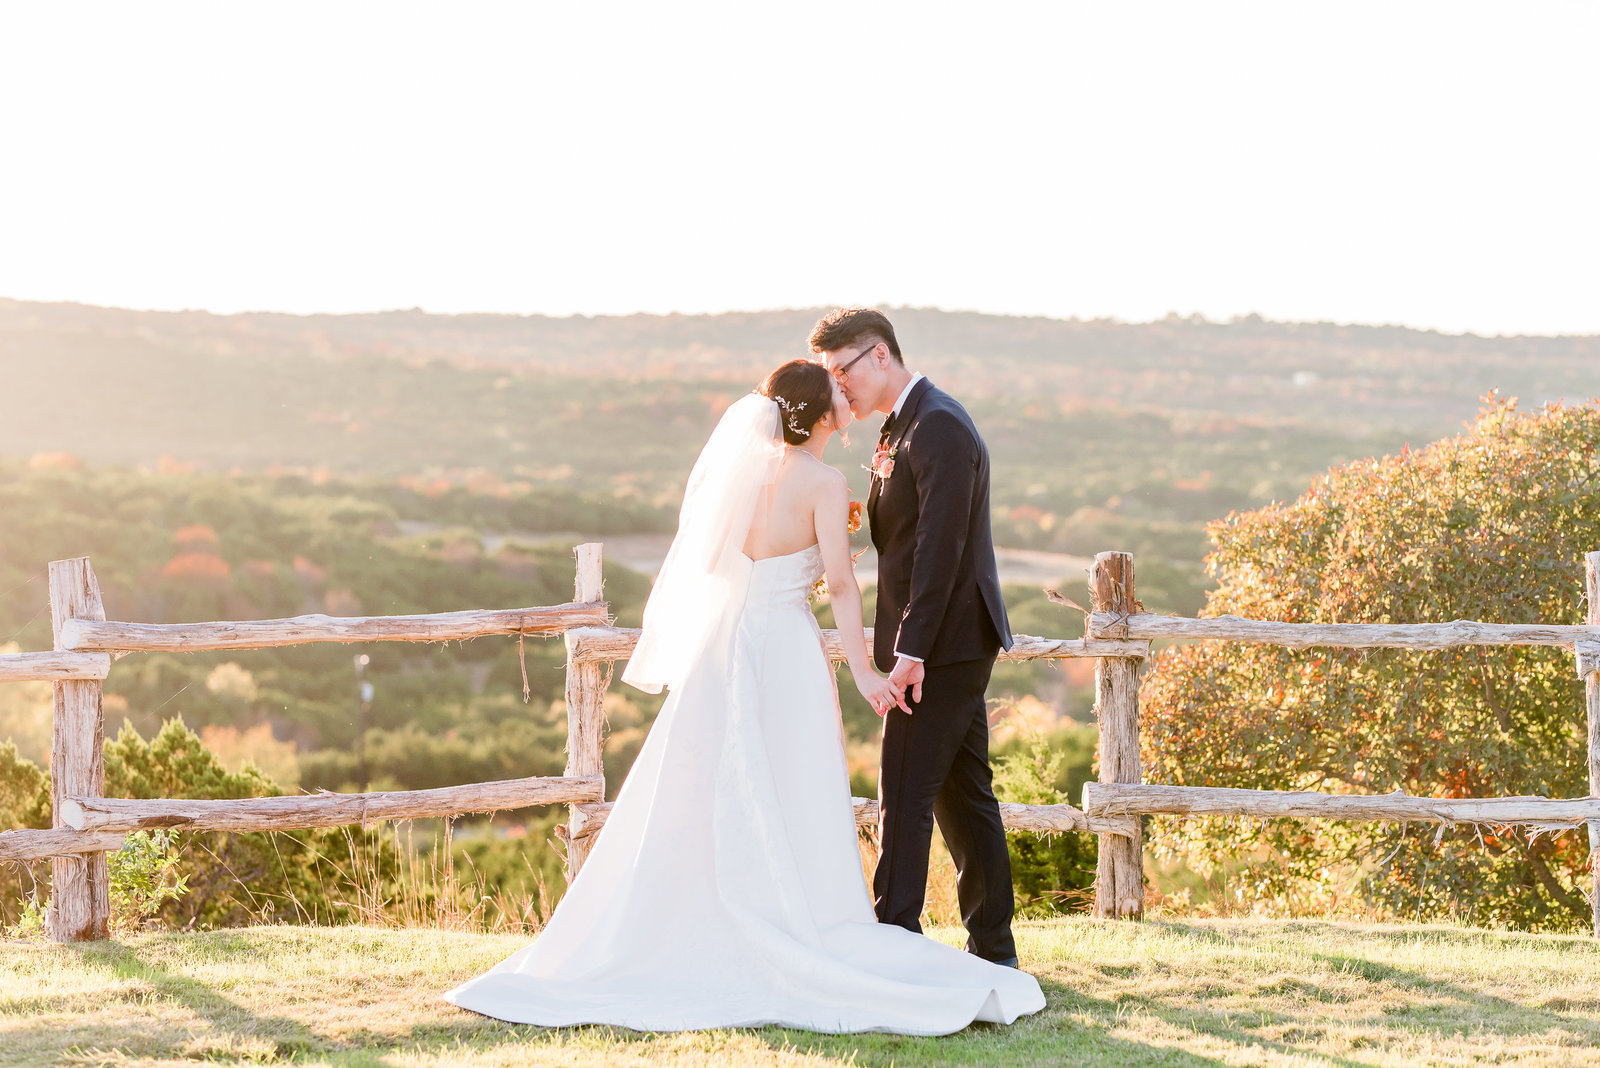 Dallas Wedding Photographer Portraits at Dove Ridge Vineyard